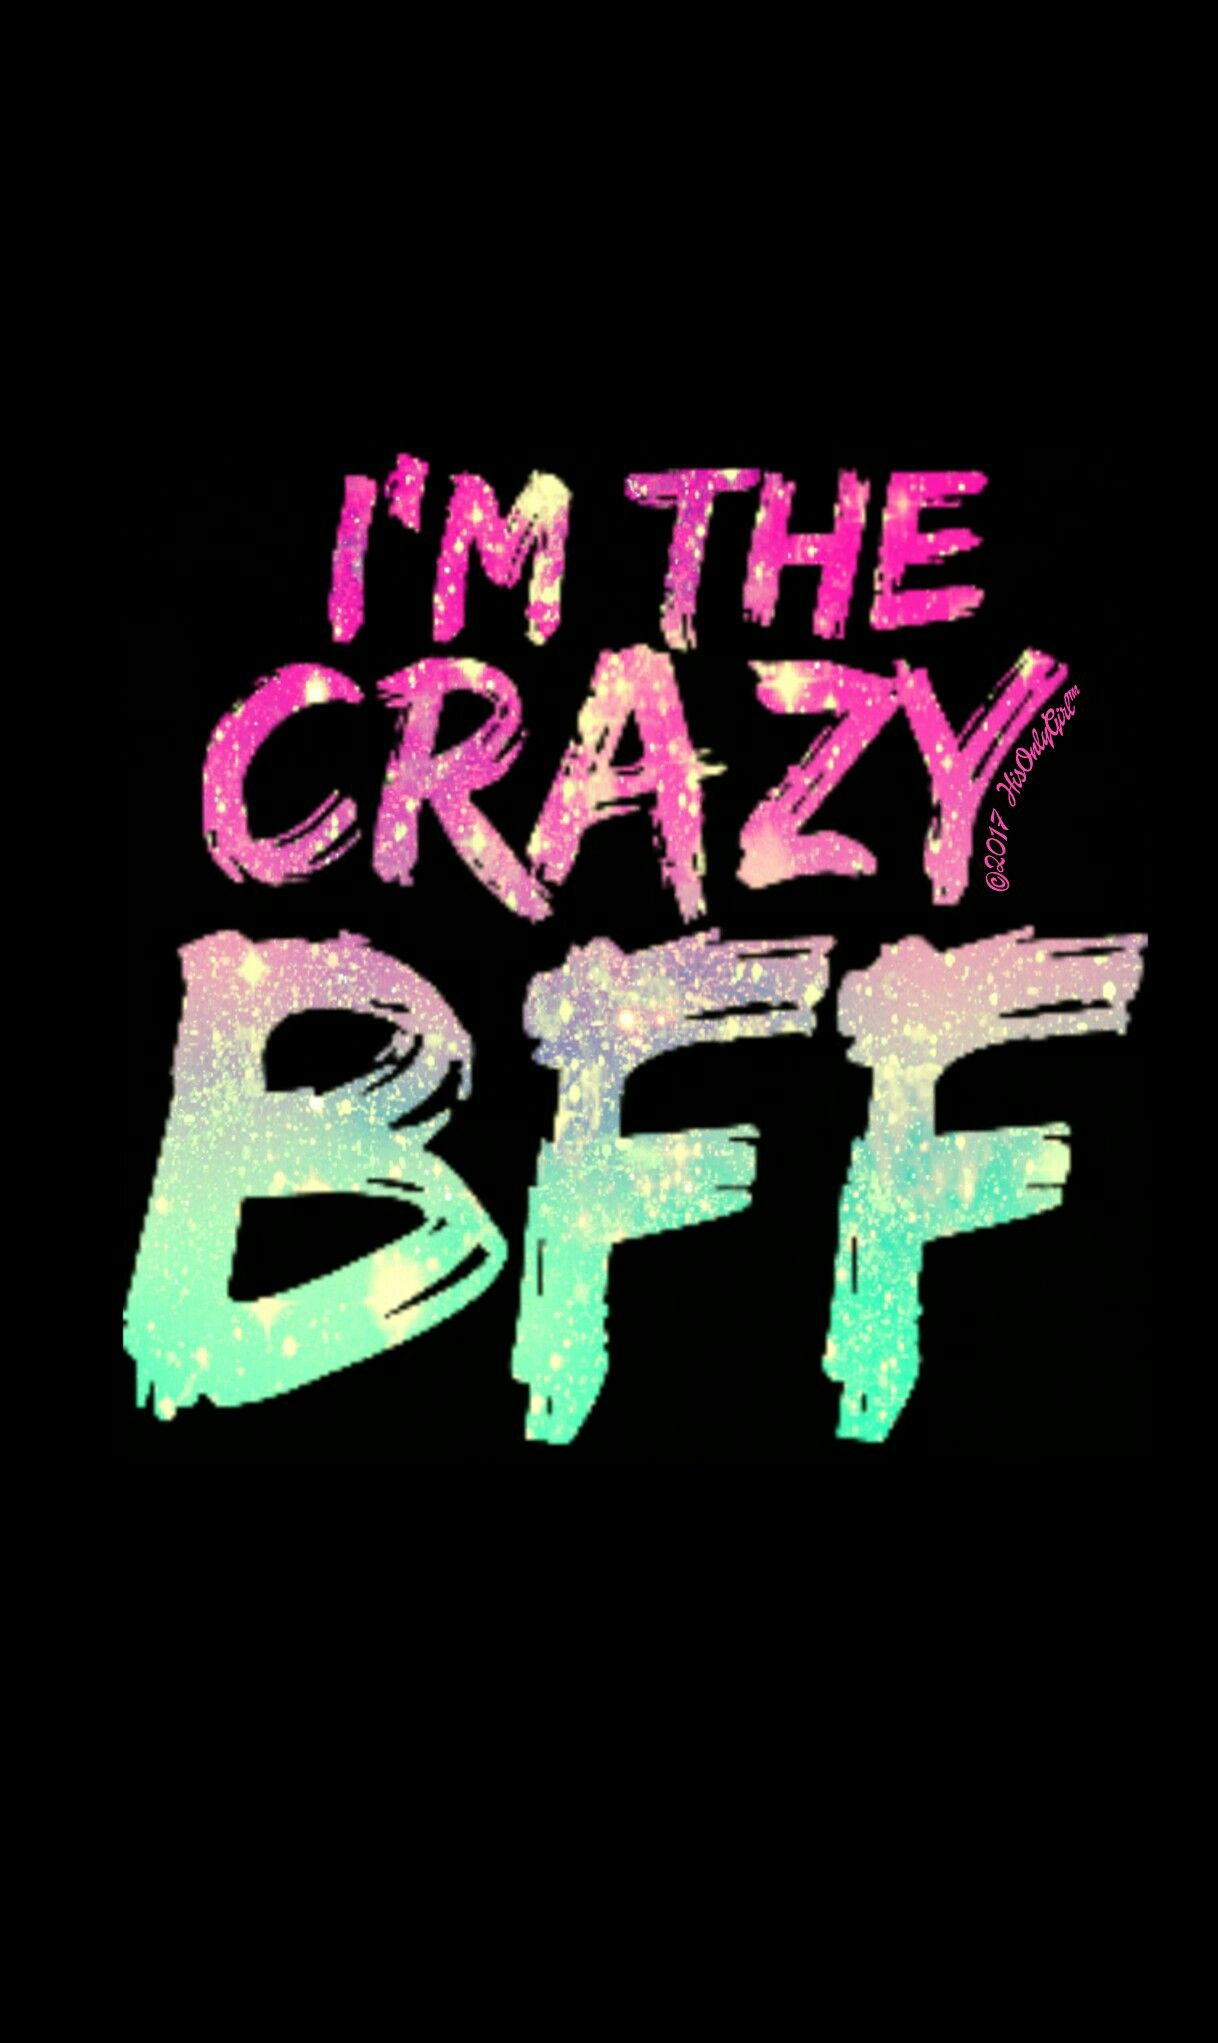 Cute Wallpapers Keep Calm Crazy Bff Galaxy Wallpaper I Created For The App Cocoppa